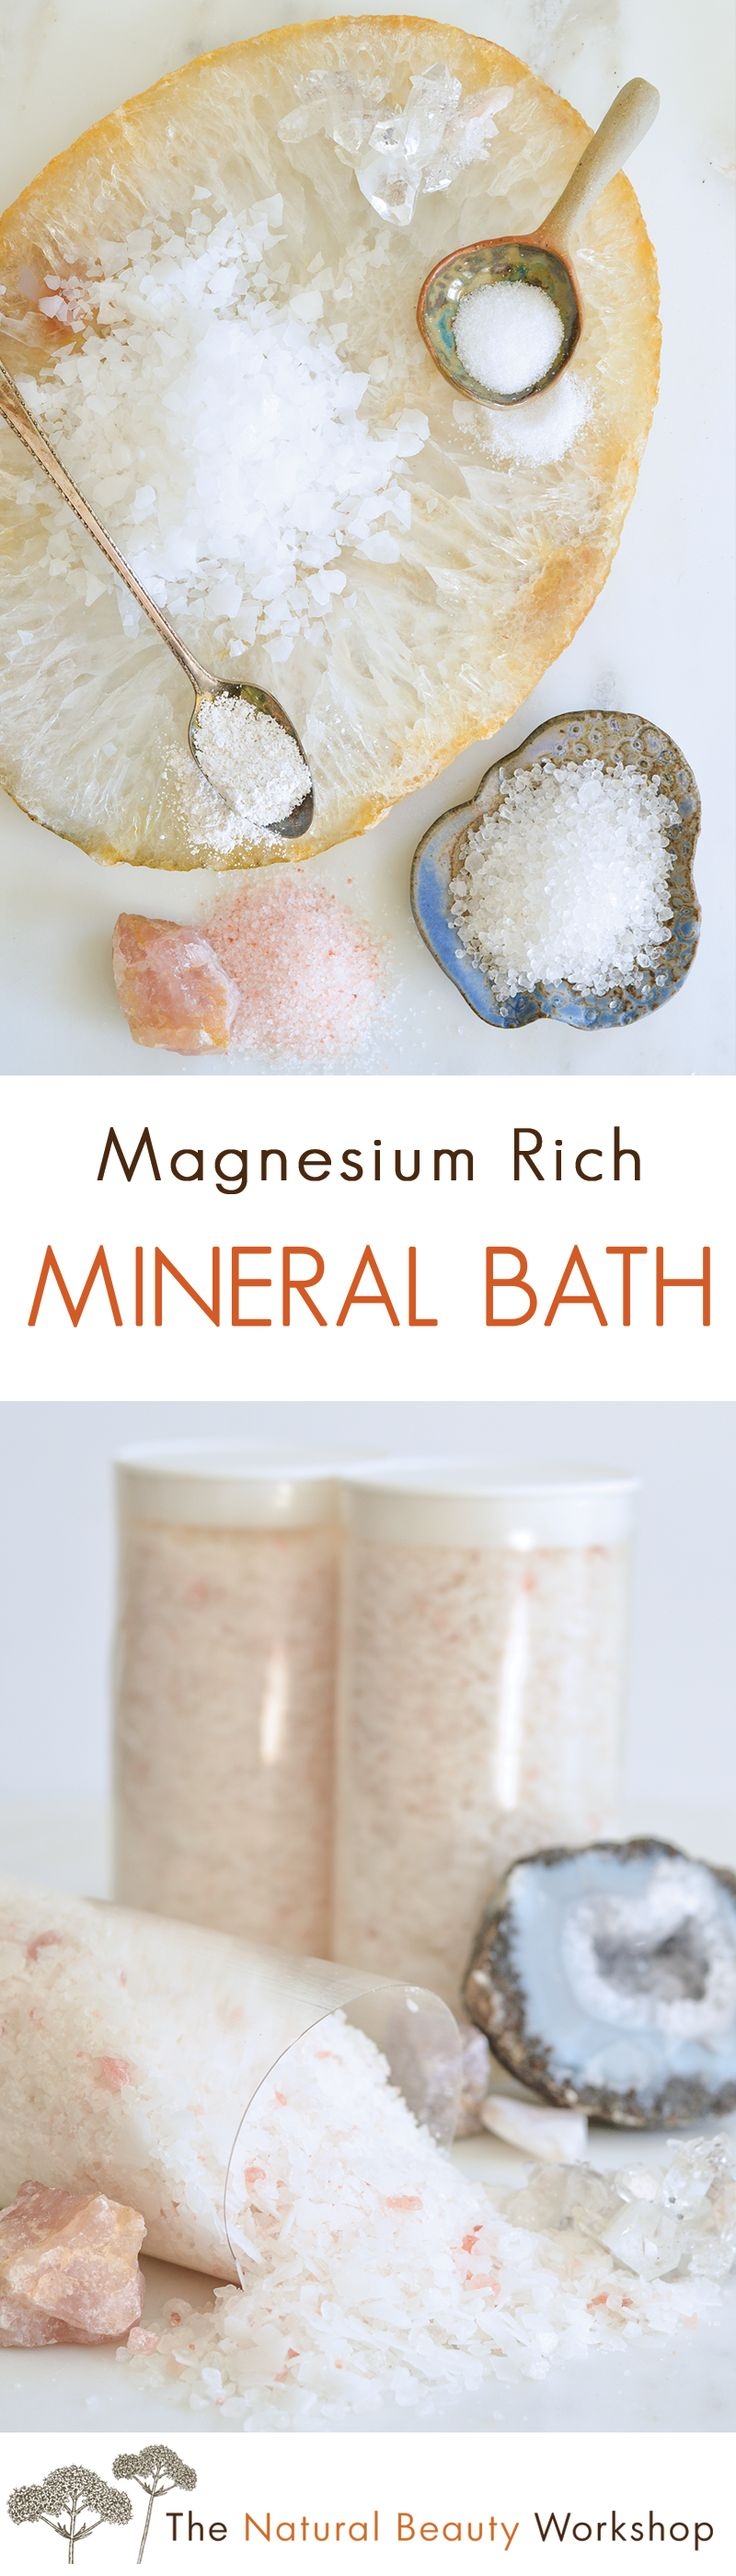 Make Your Own All-Natural Magnesium Rich Mineral Bath